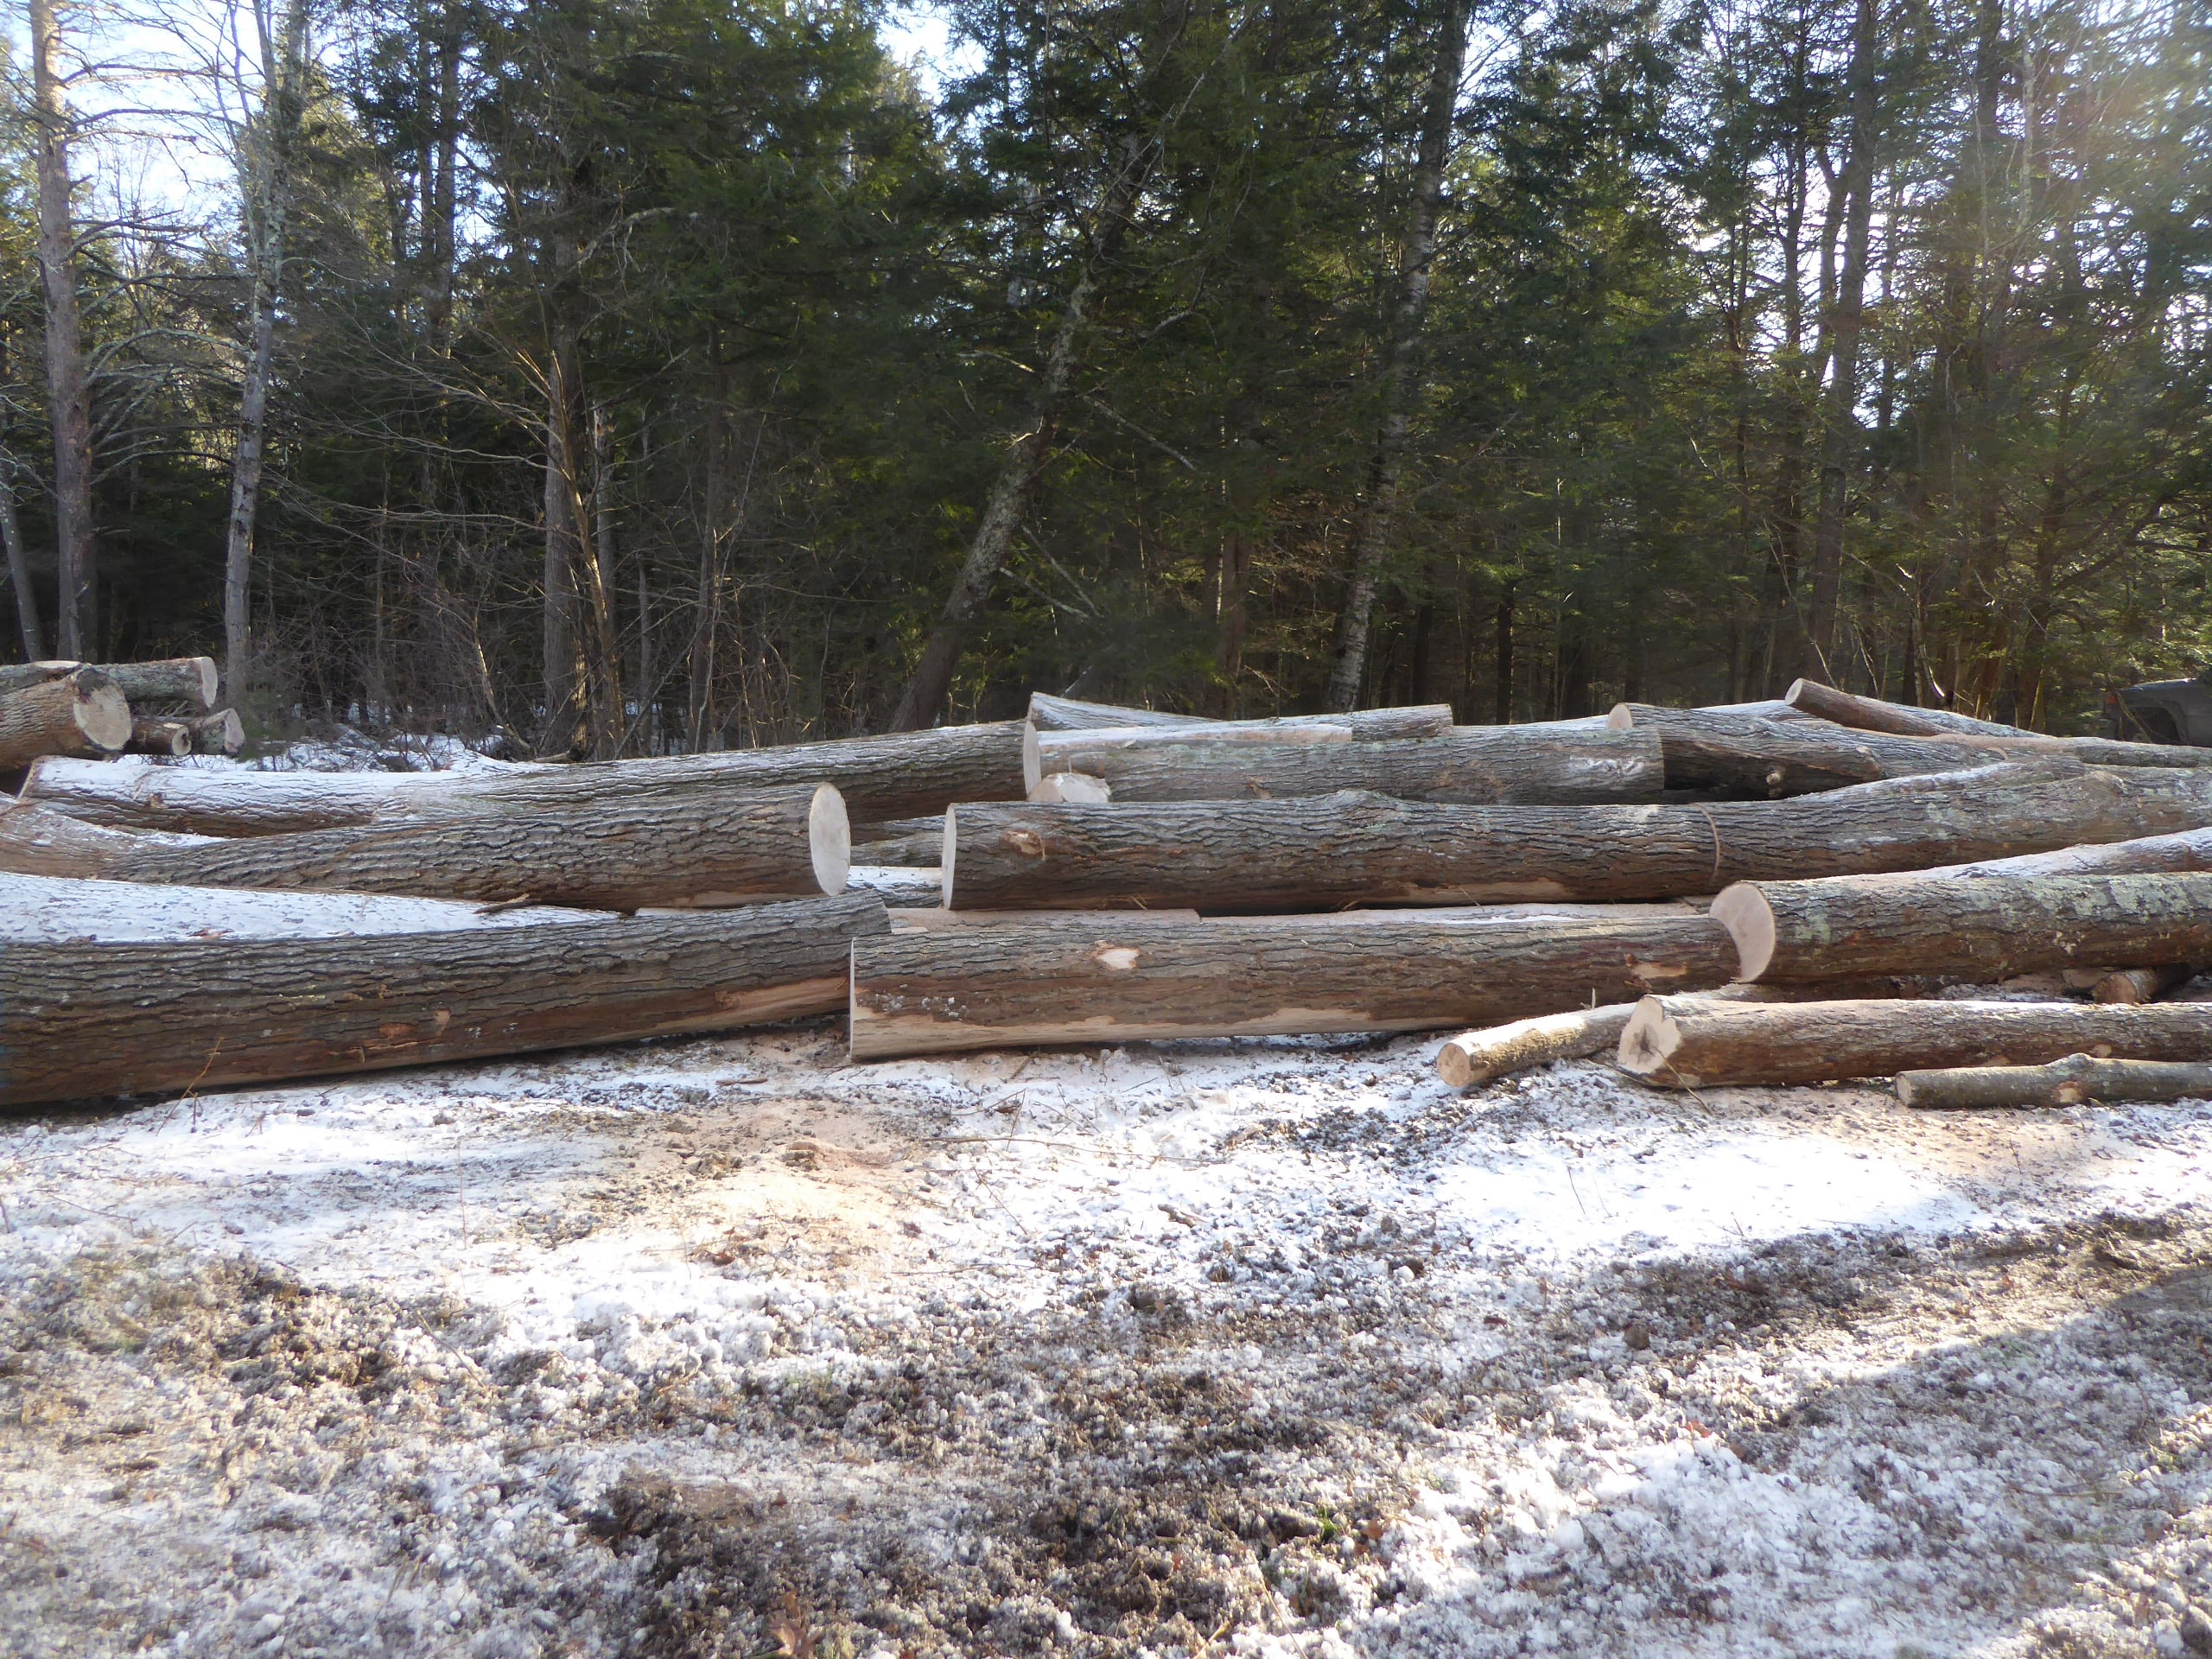 Hardwood logs on the landing are cut into sections to be trucked to Cersosimo Lumber's sawmill in Brattleboro, VT.